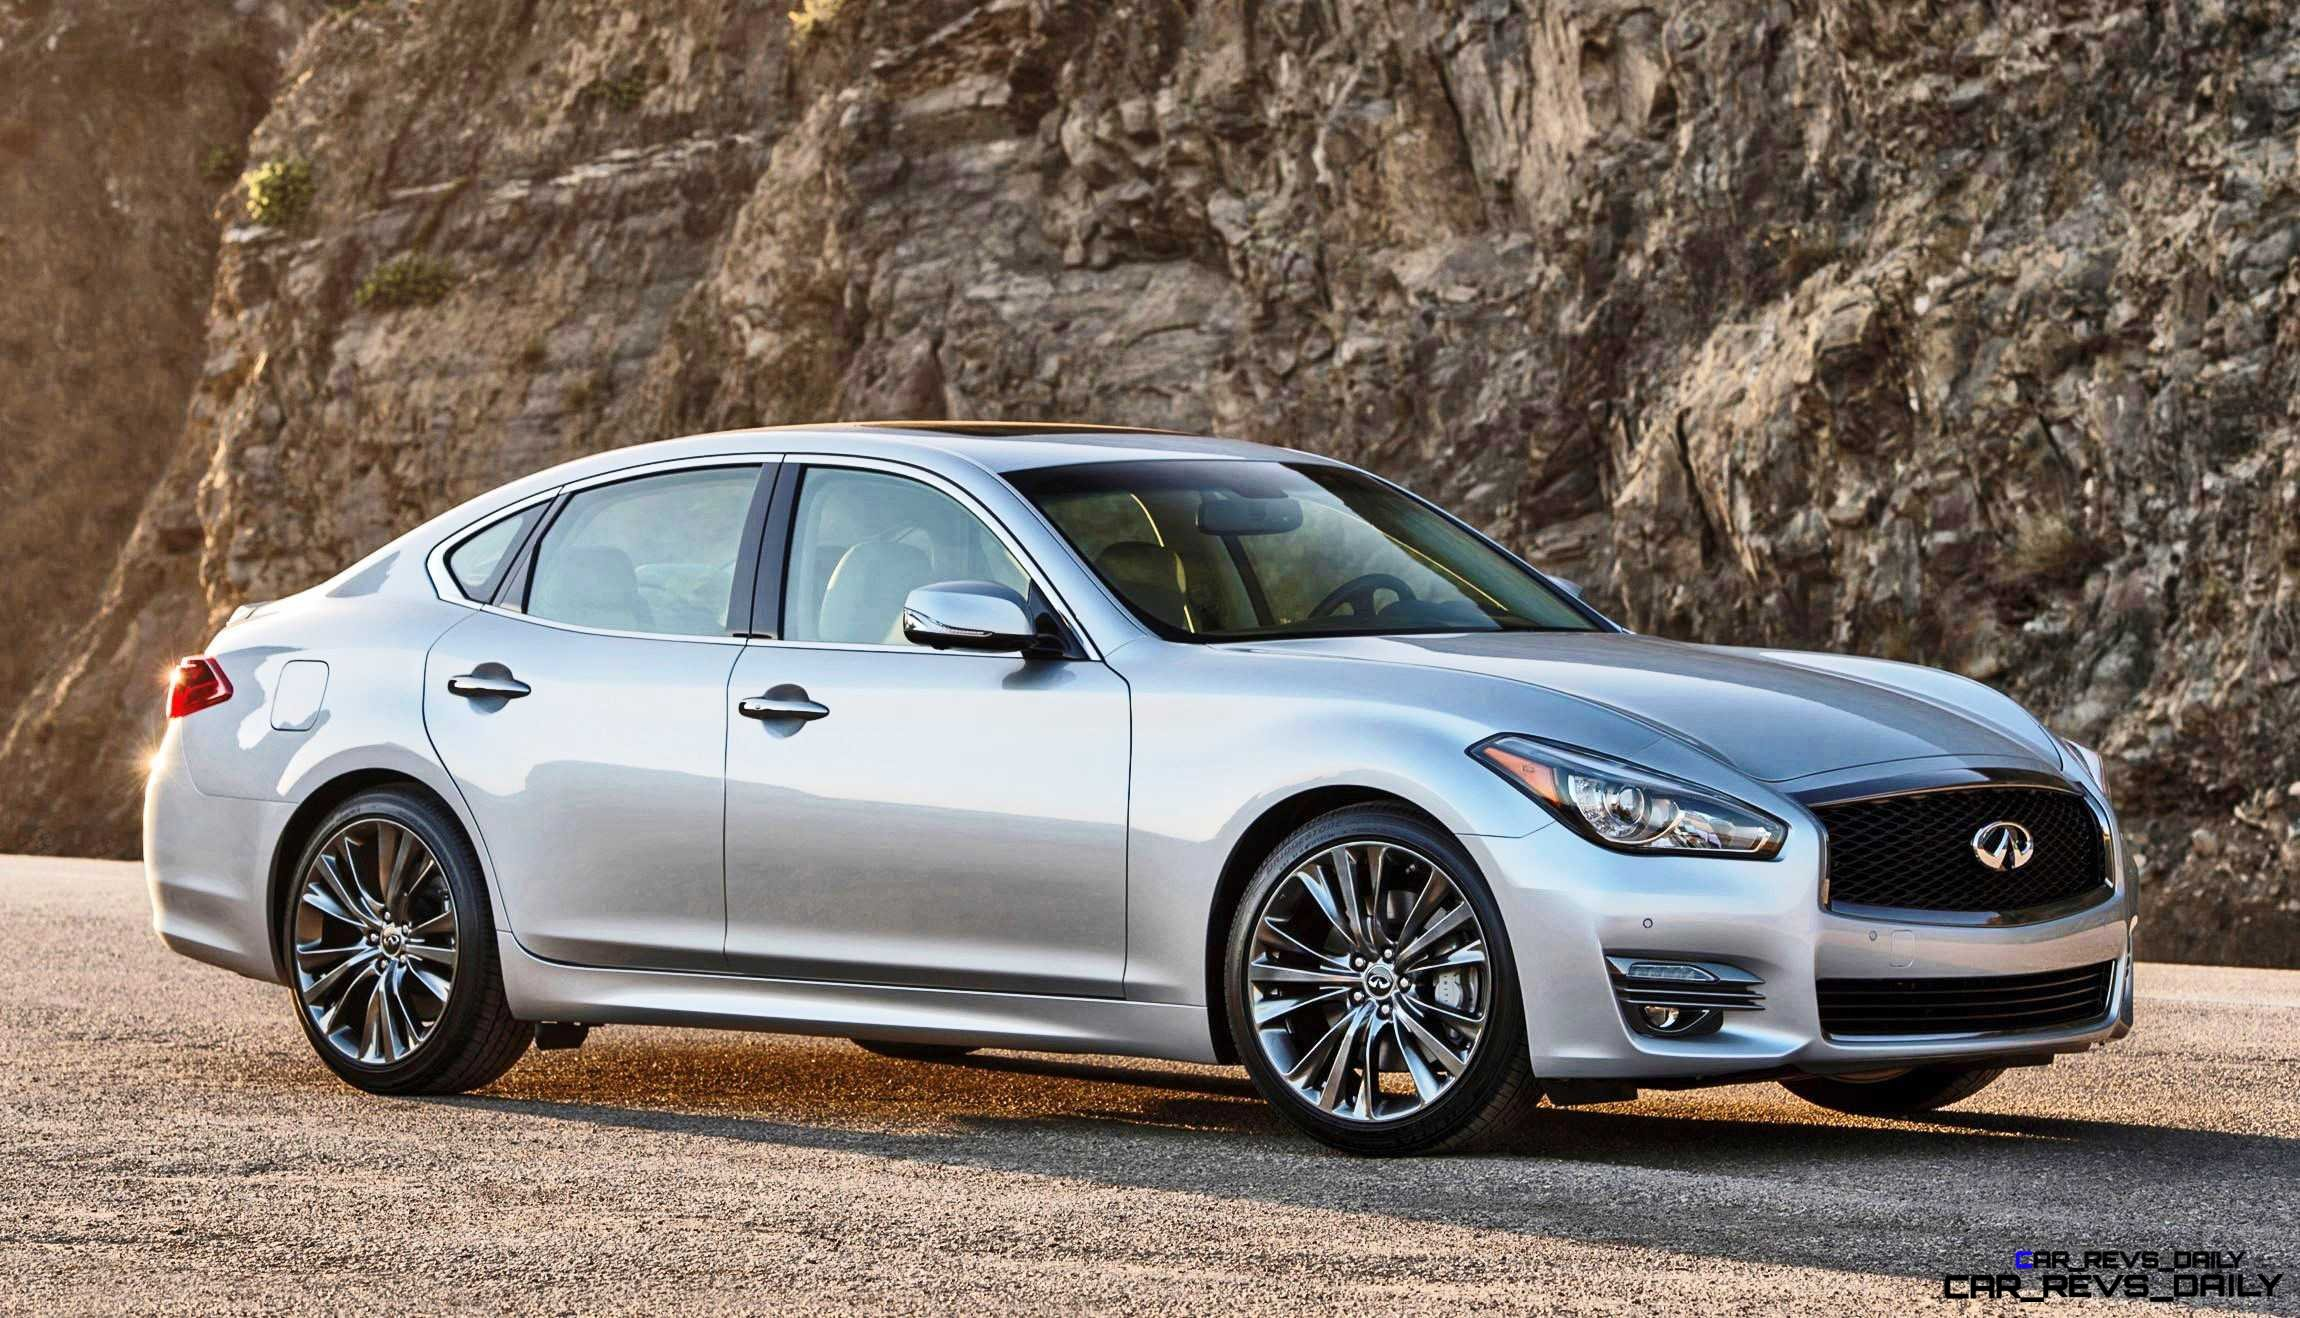 sdut infinity tribune road test union infiniti of is san the diego story a poshness contemporary and power display cars